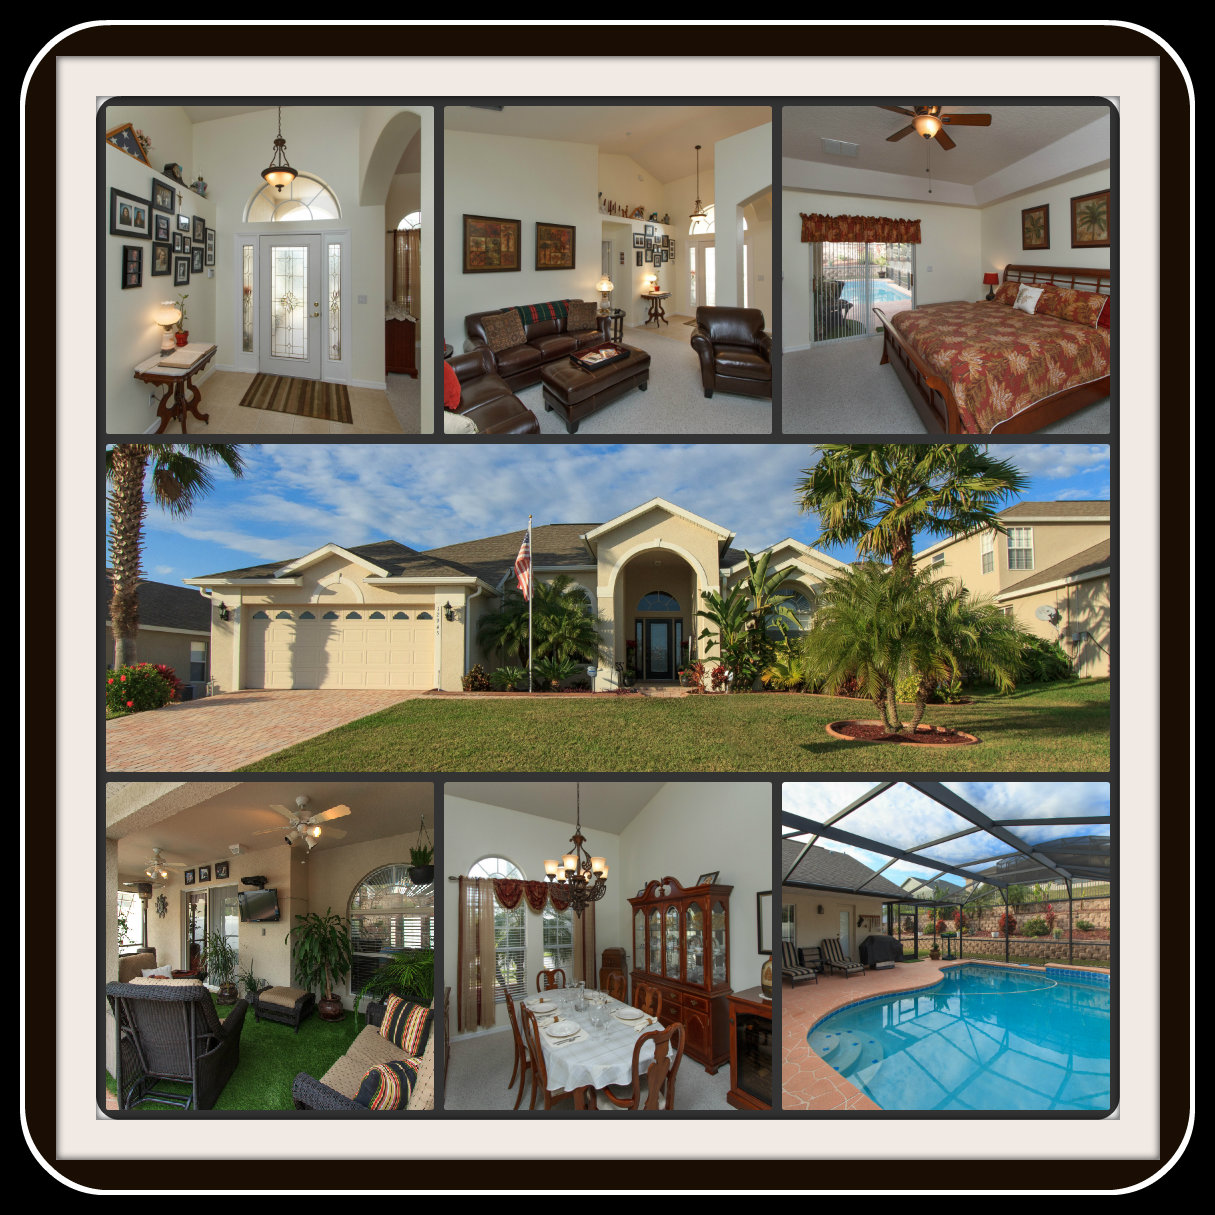 Awesome Orlando Fl Houses For Rent Apartments: Stunning Pool Home Just Listed In Clermont FL